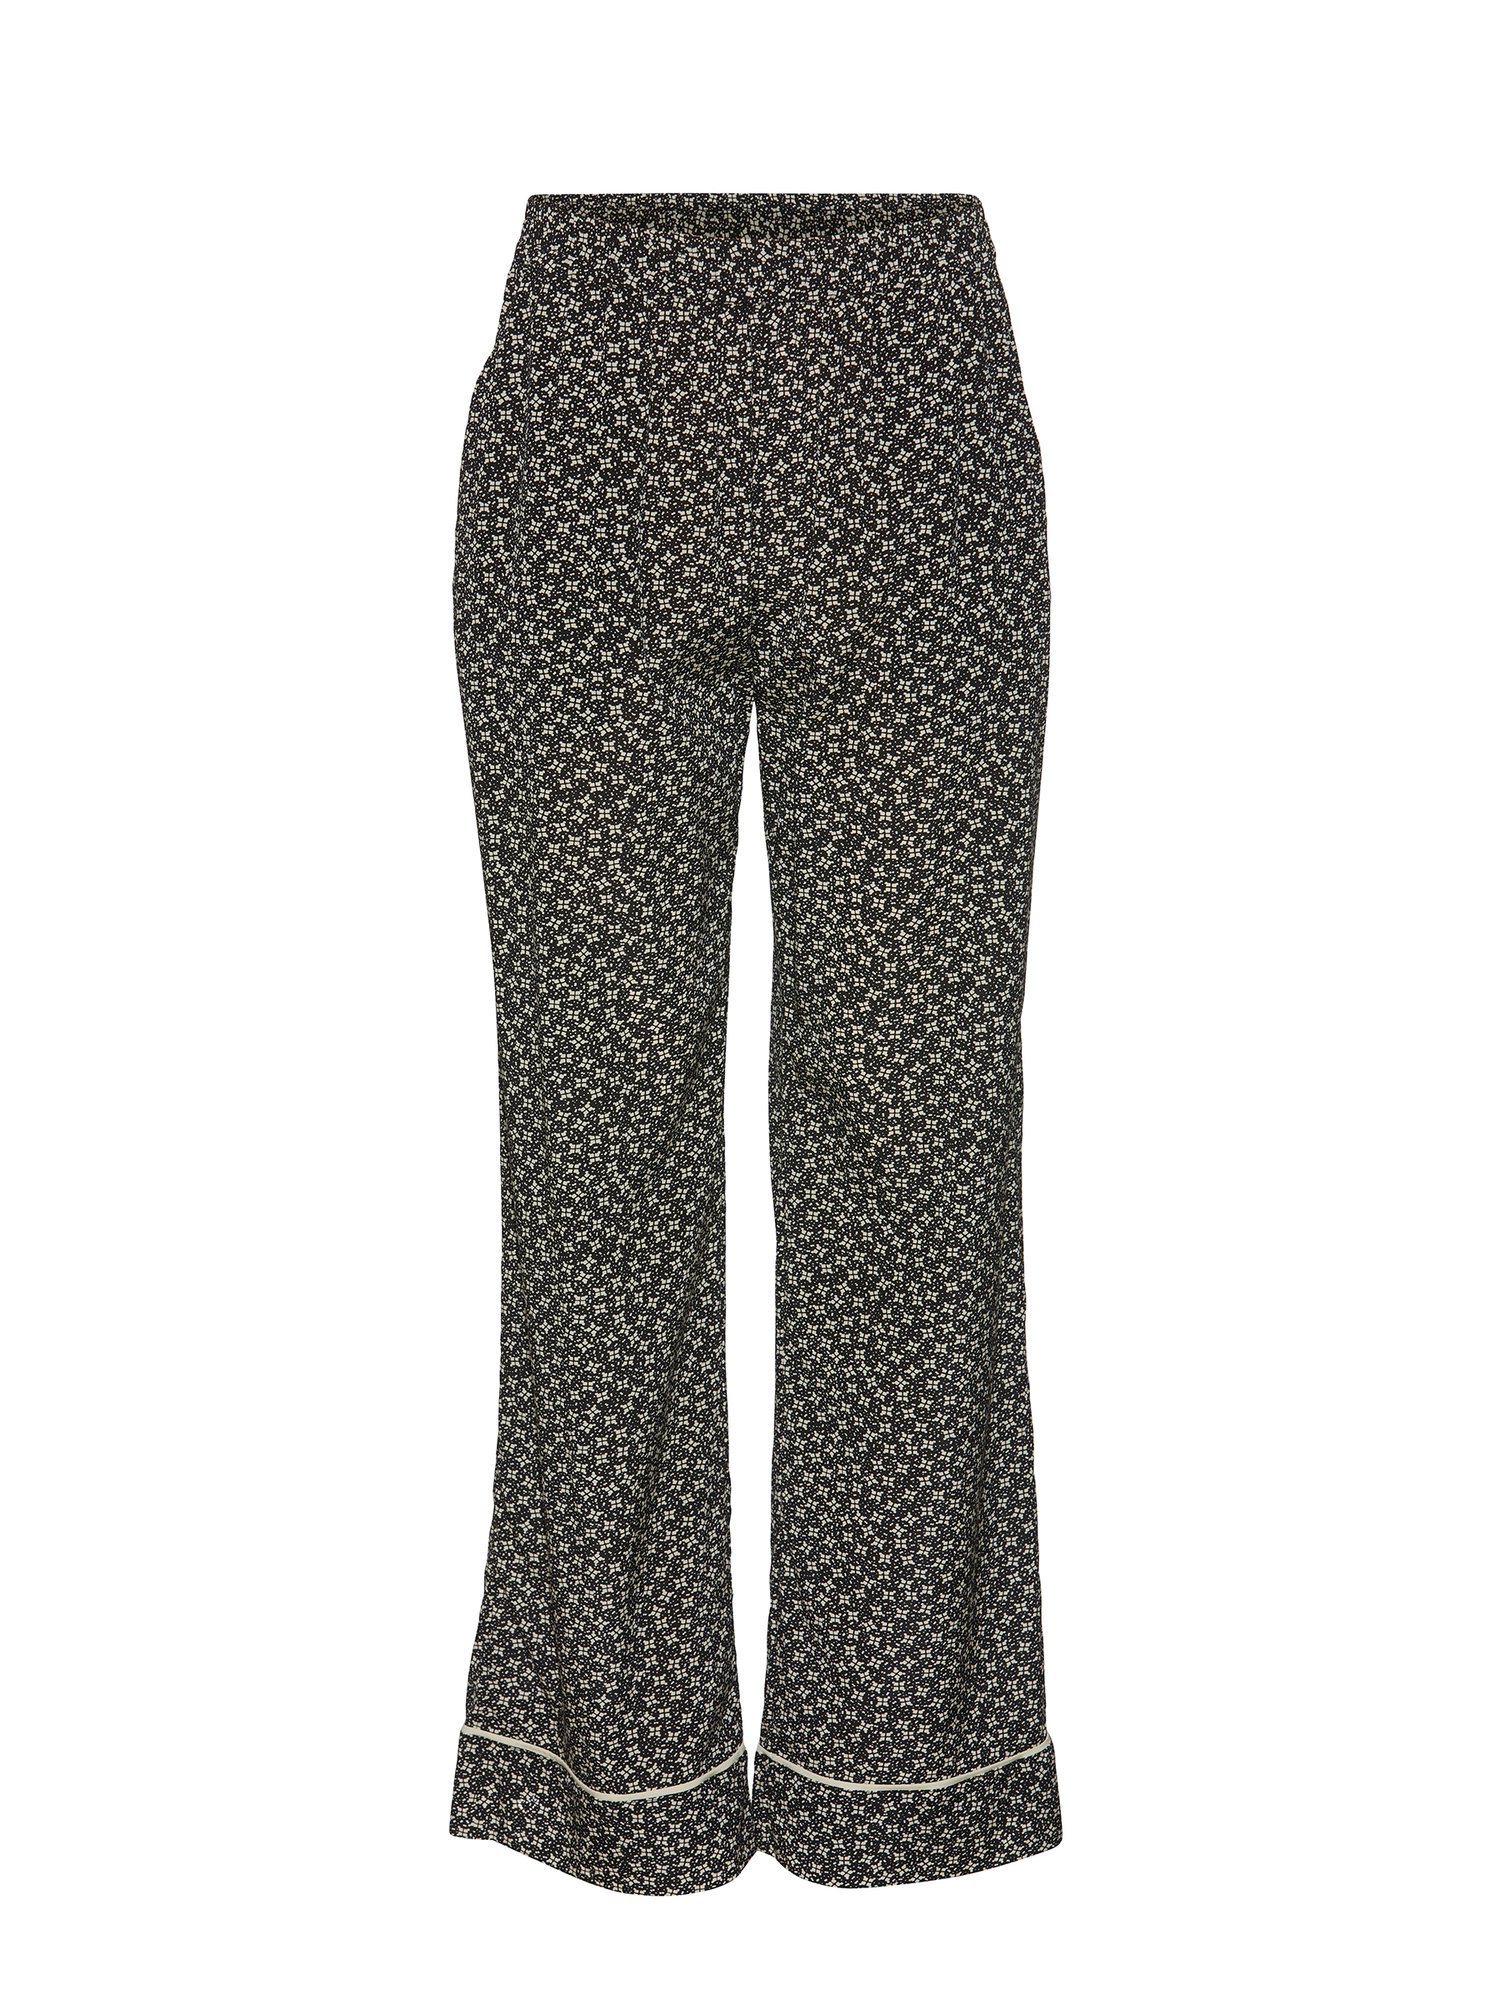 Heartmade/Julie Fagerholt Noly Pants Black/